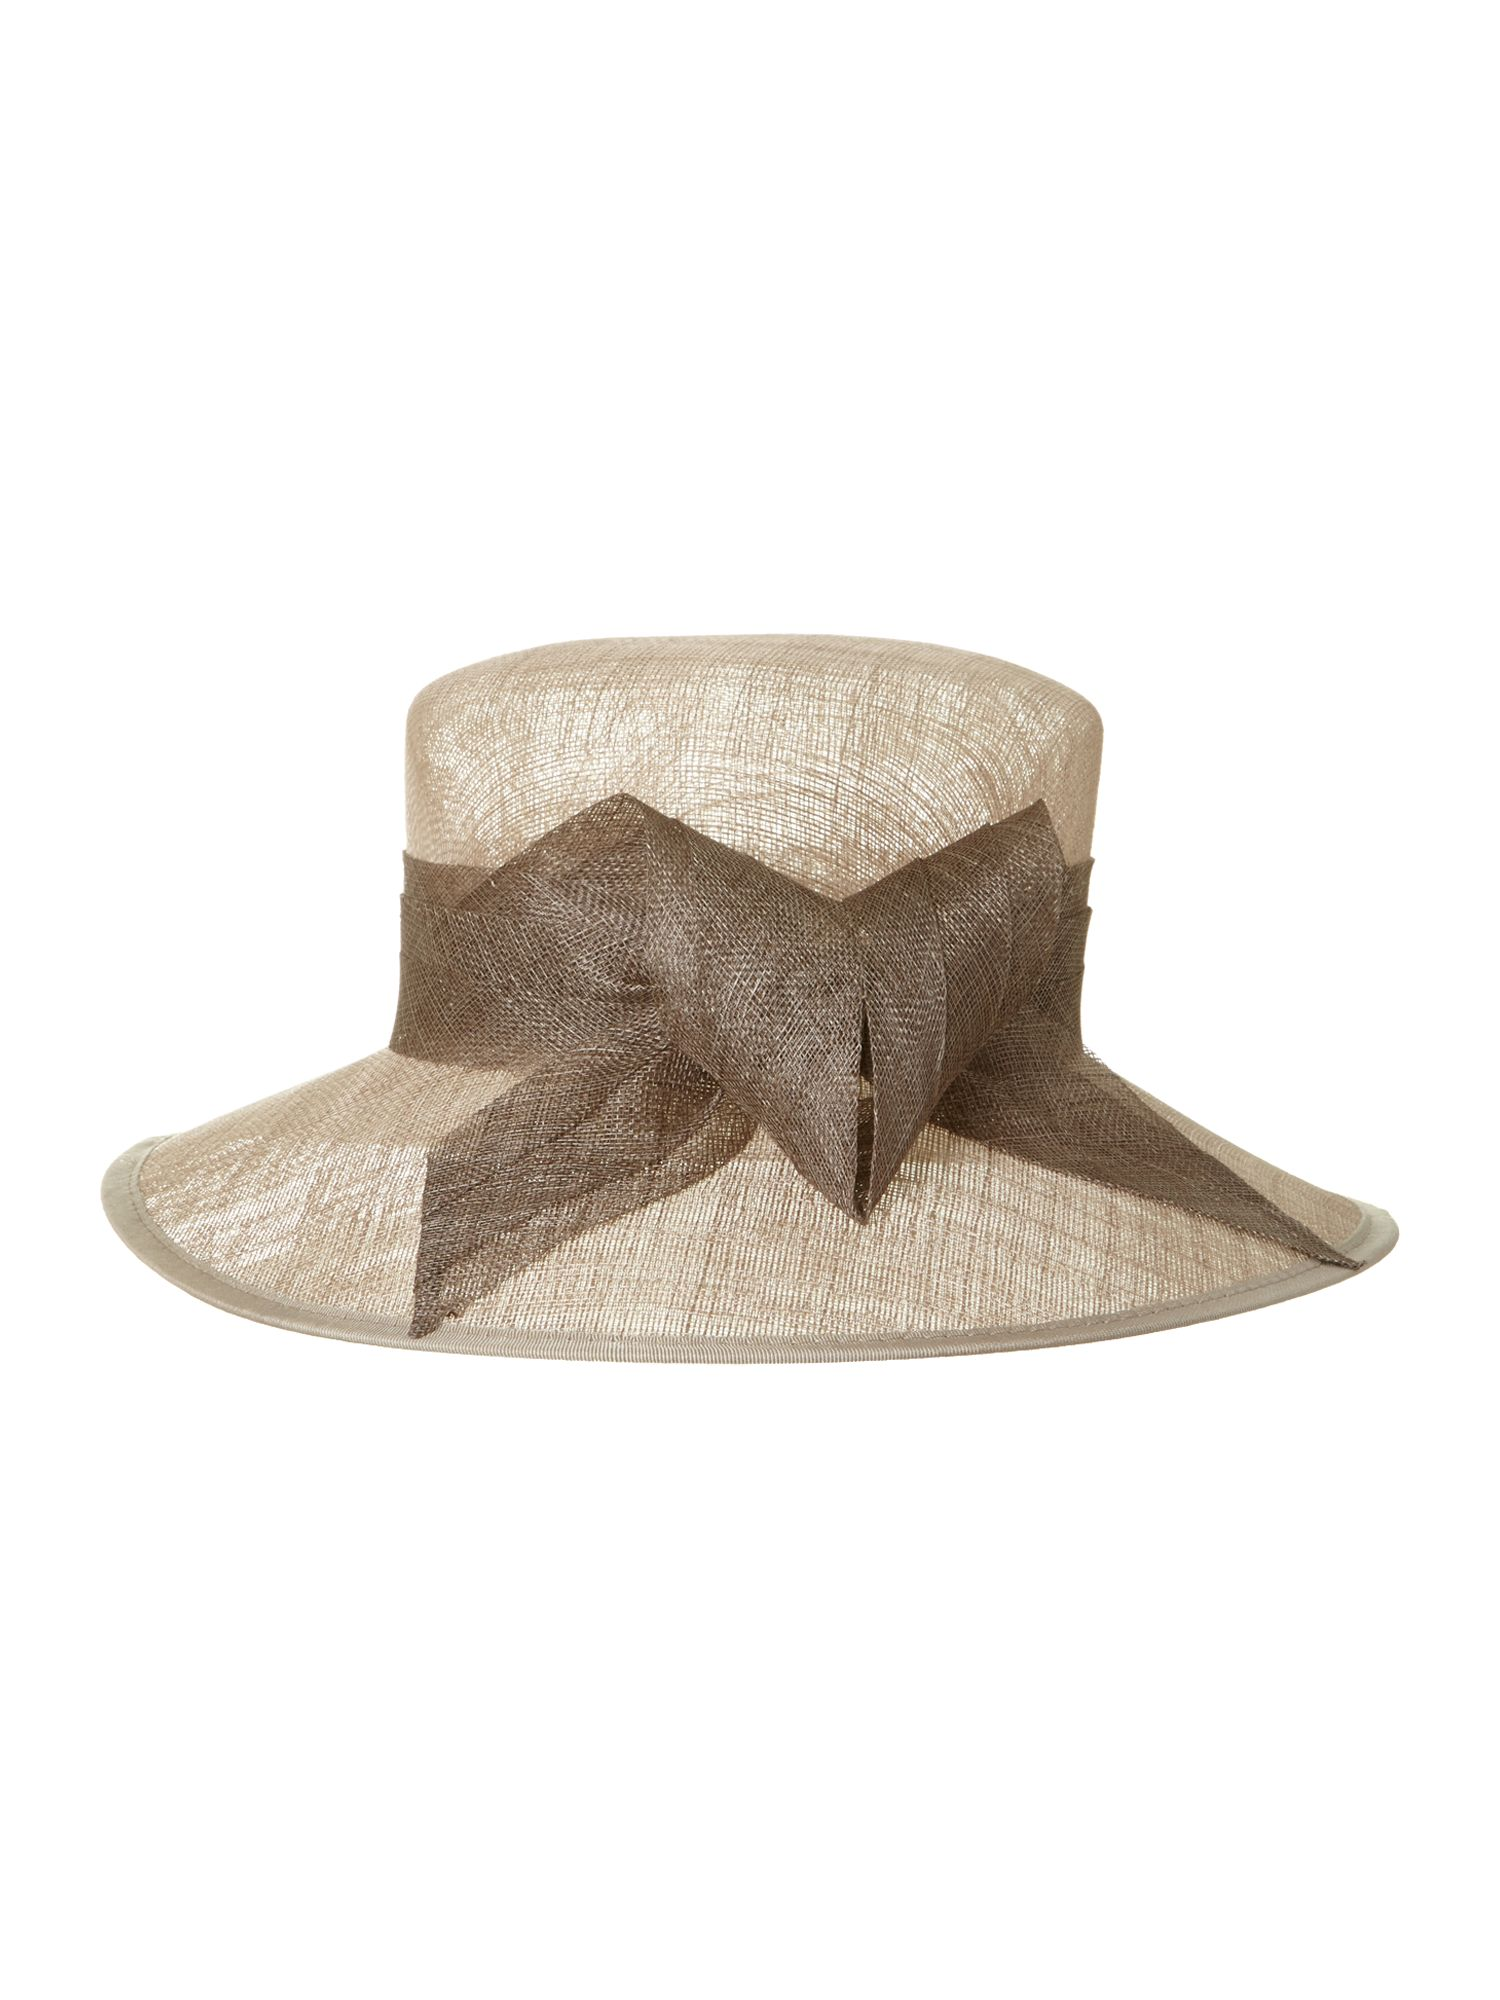 Lynette hat with statement bow